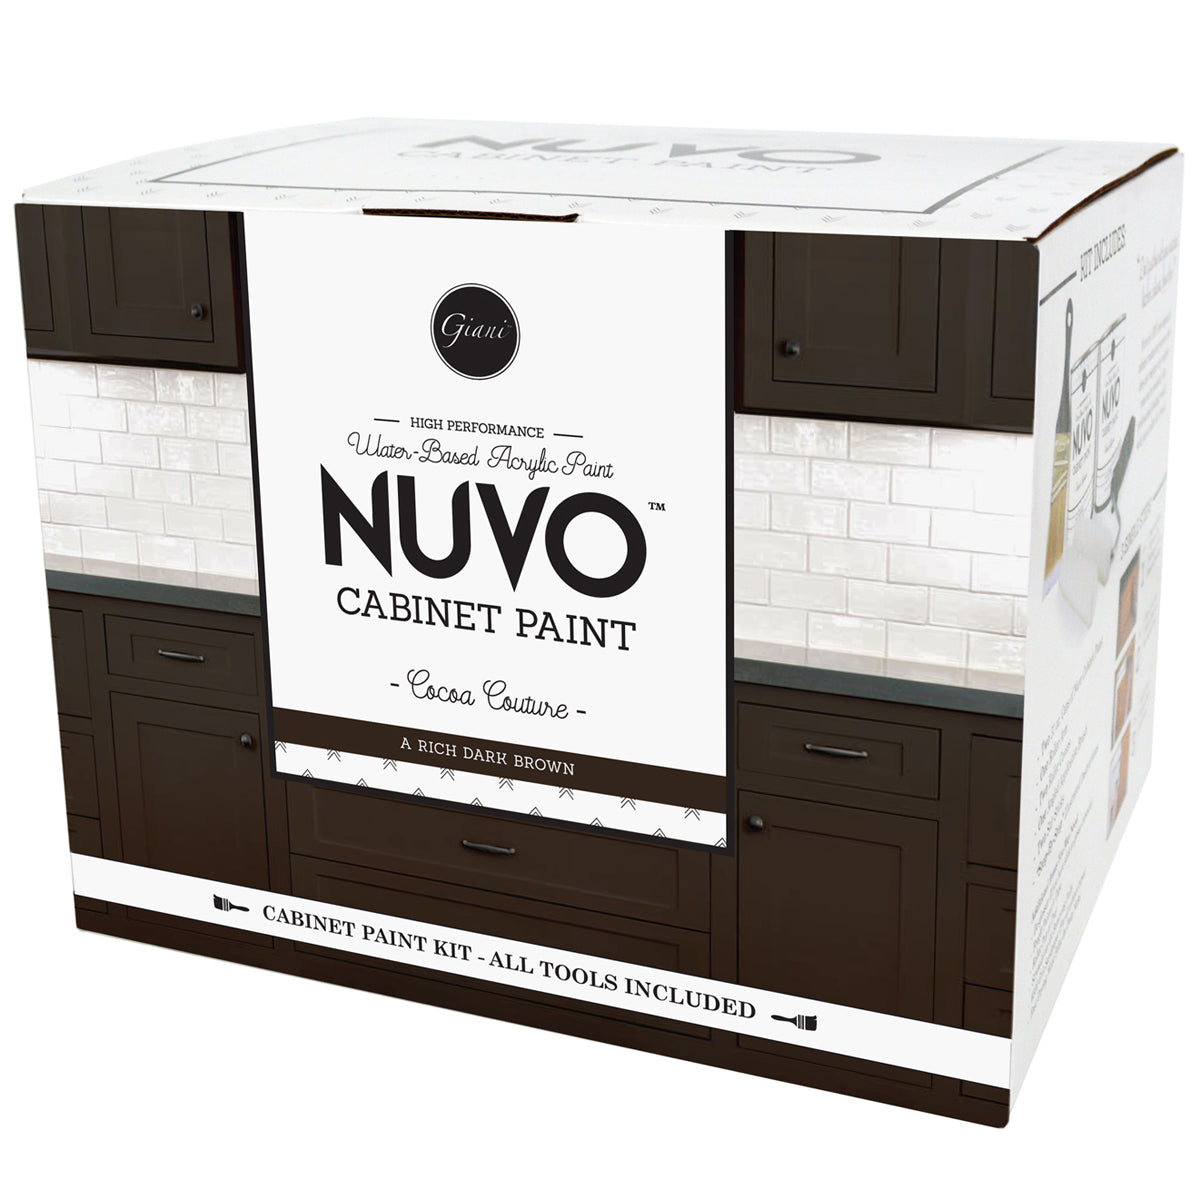 Exceptional Nuvo Cocoa Couture Cabinet Paint Kit